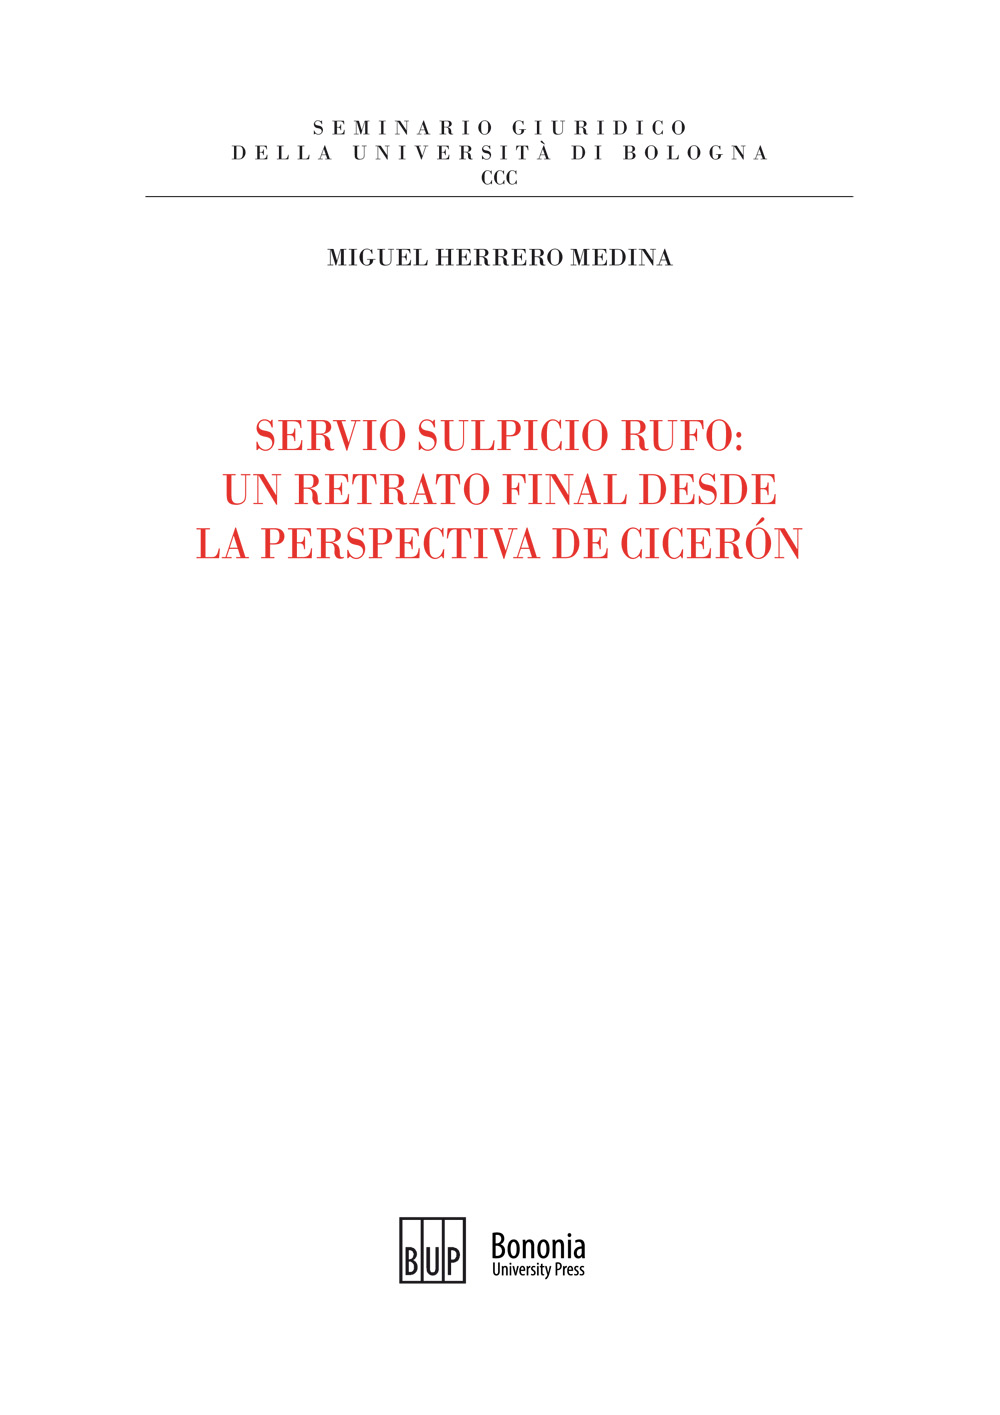 Servio Sulpicio Rufo - Bononia University Press